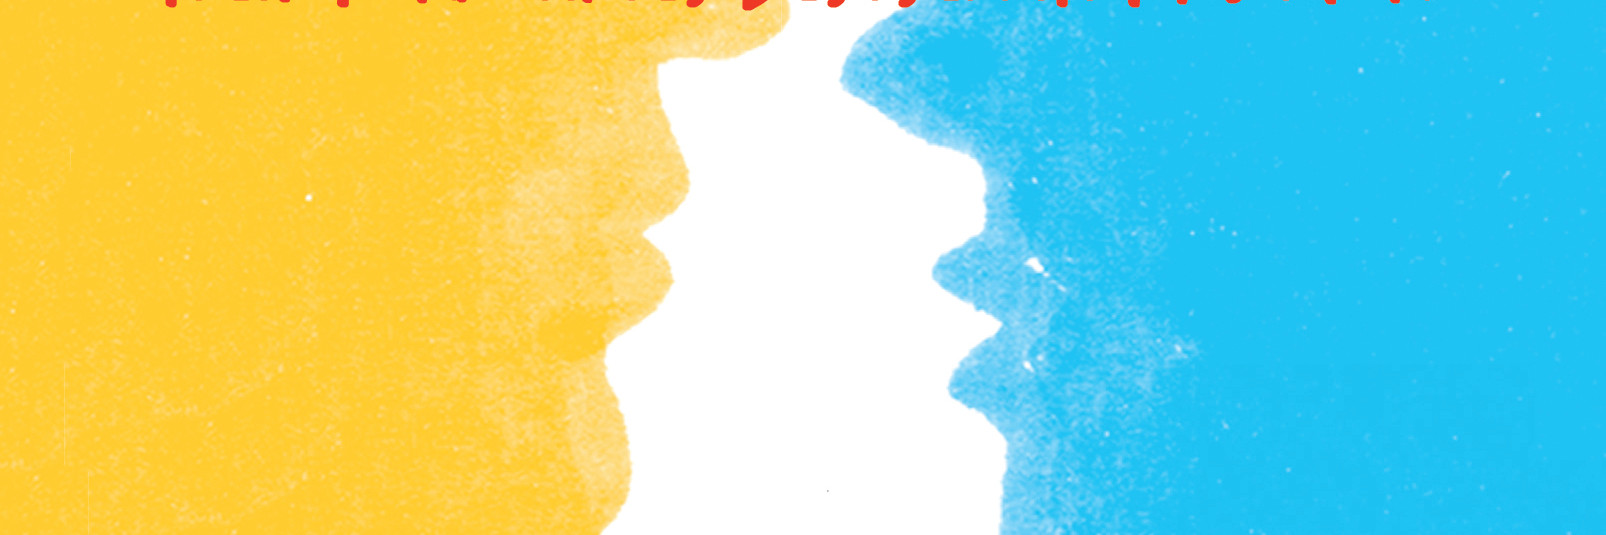 The colour silhouettes of two young men gaze at one another.